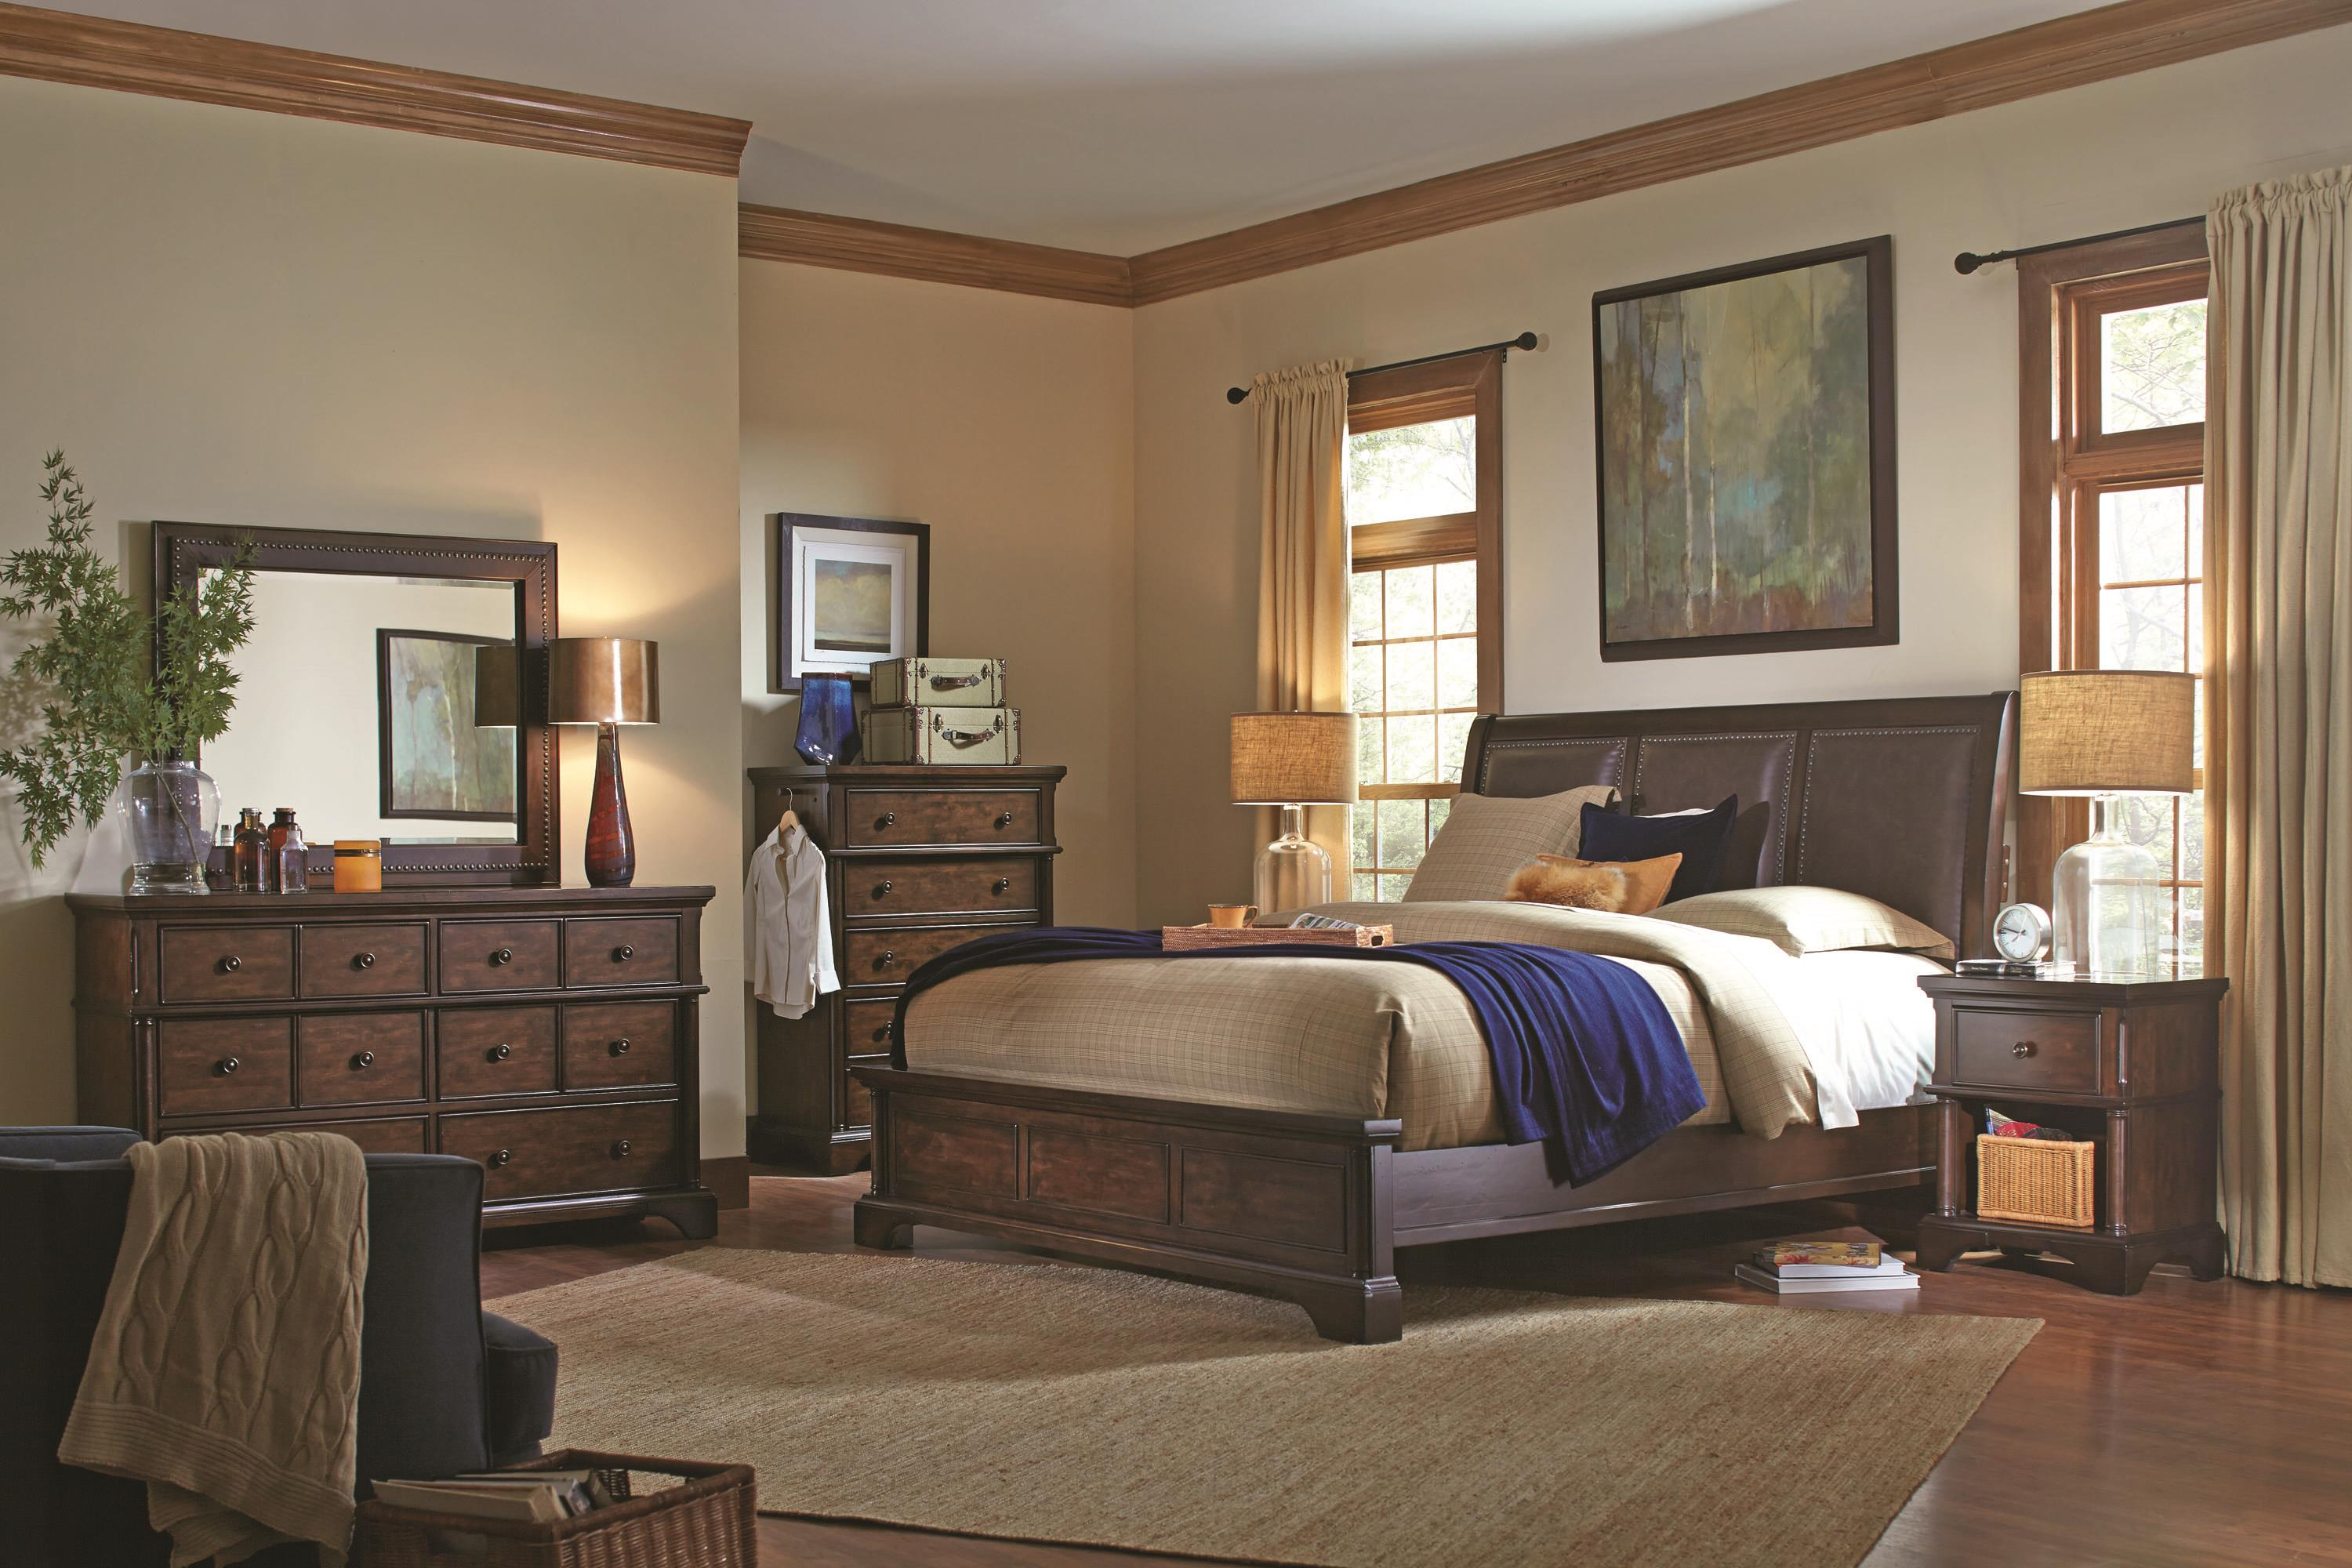 Aspenhome Bancroft California King Bedroom Group - Item Number: I08 CK Bedroom Group 3